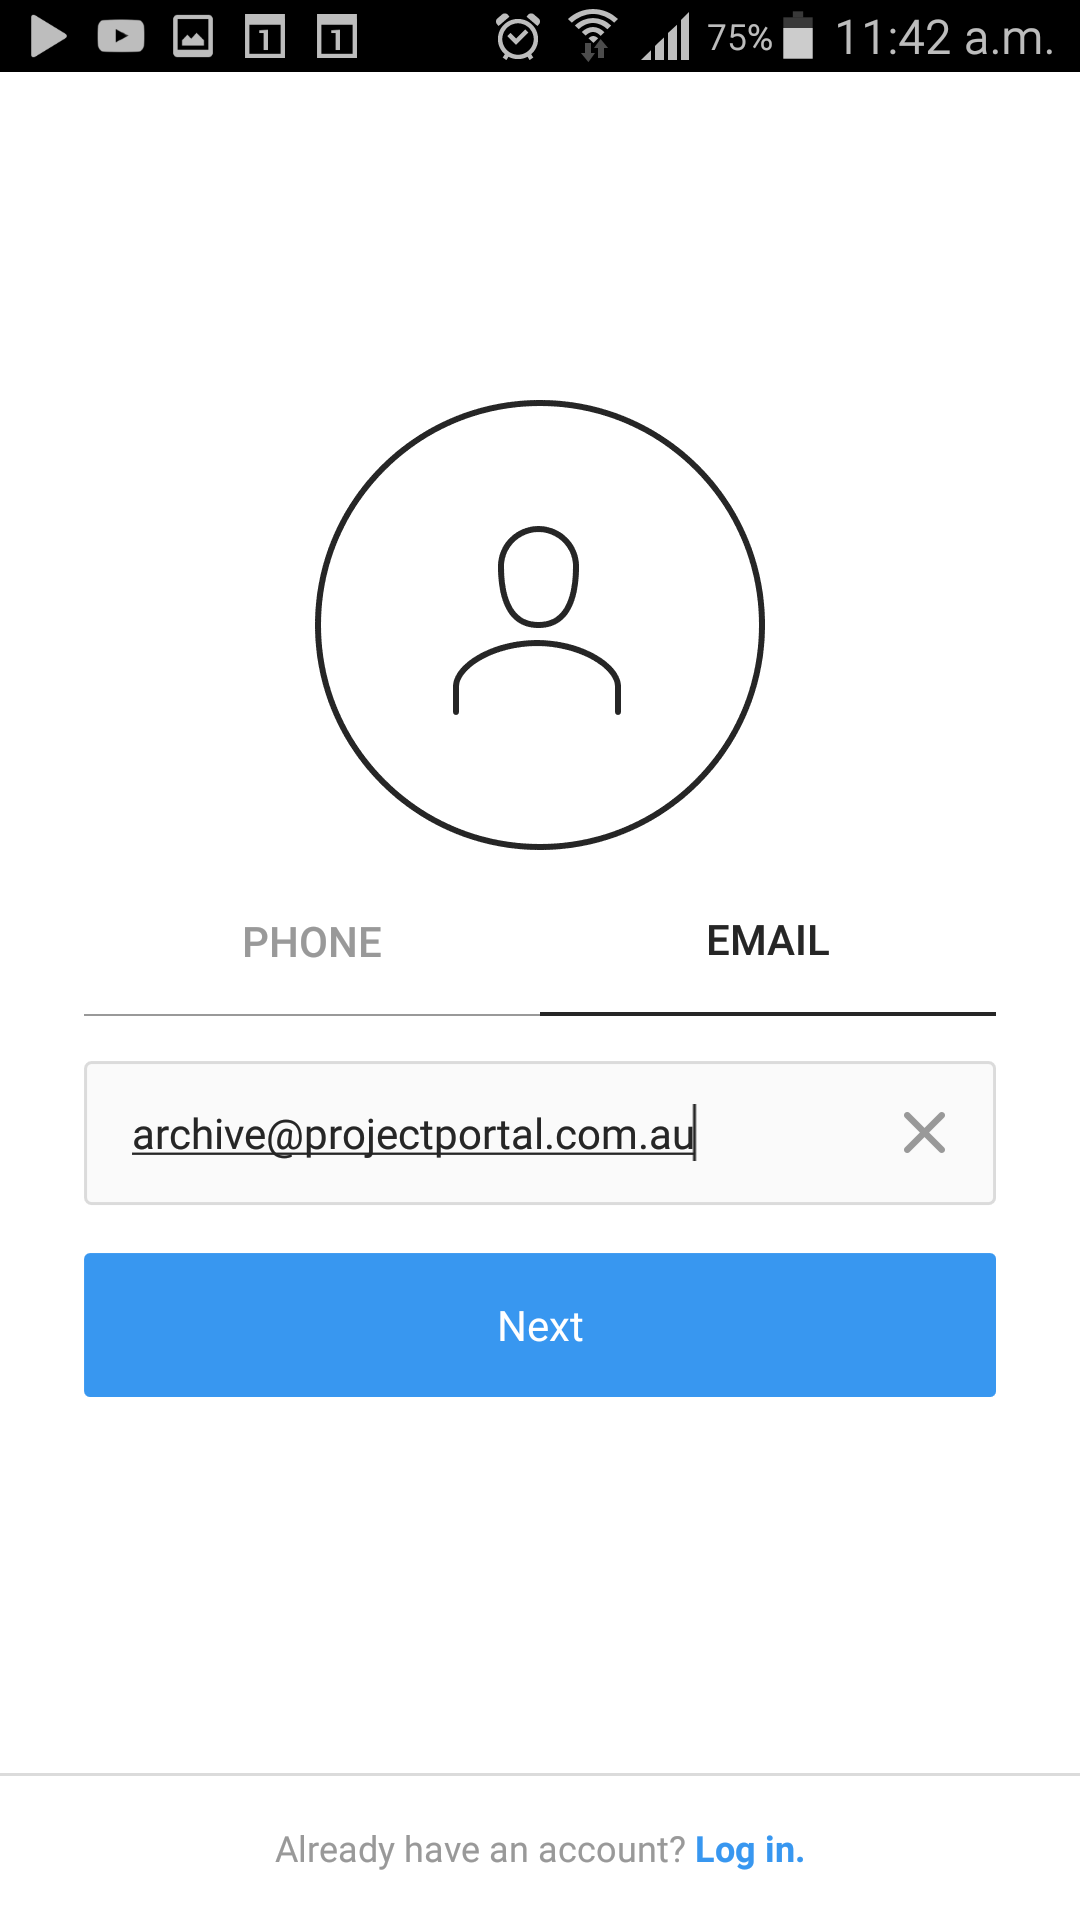 Step 3 - Sign-up with Email - Register a new account using an Email.As a best practice, use a generic email address such as Info@yourmail.com or admin@yourmail.com.In our example, multiple users will be accessing the same Instagram account, so choose a password that is easy for all users to remember.Please Note - Emails are limited to 30 characters - If your email address exceeds this number, you will be unable to create an account using this address.